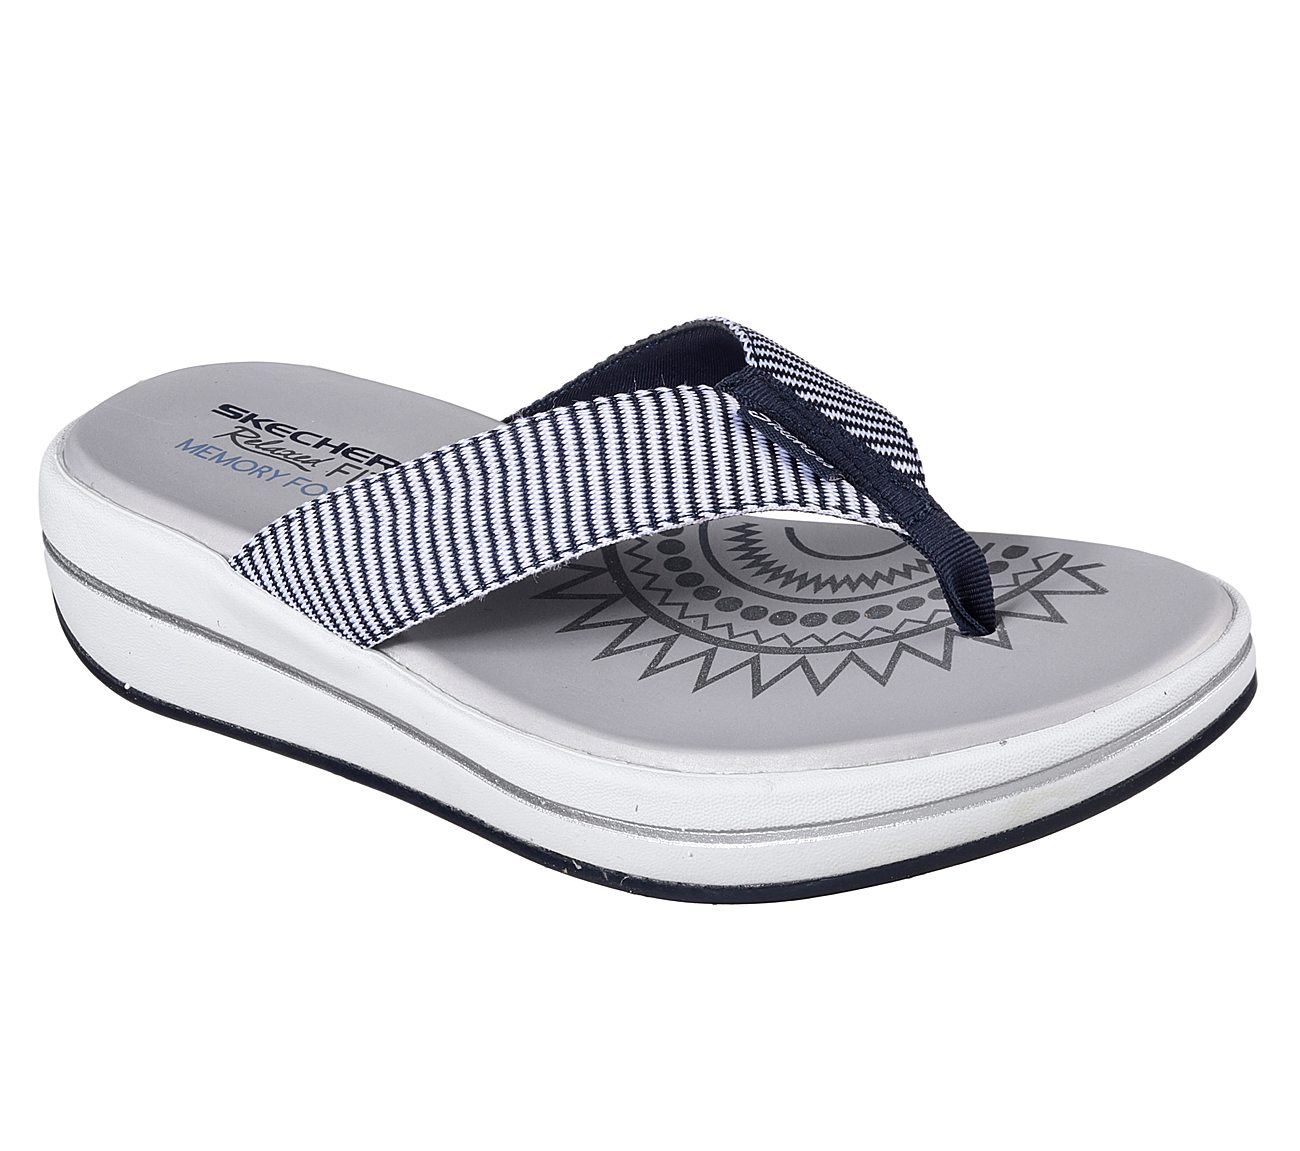 SKECHERS UPGRADES SAILIN – INFRADITO DONNA IN MEMORY FOAM